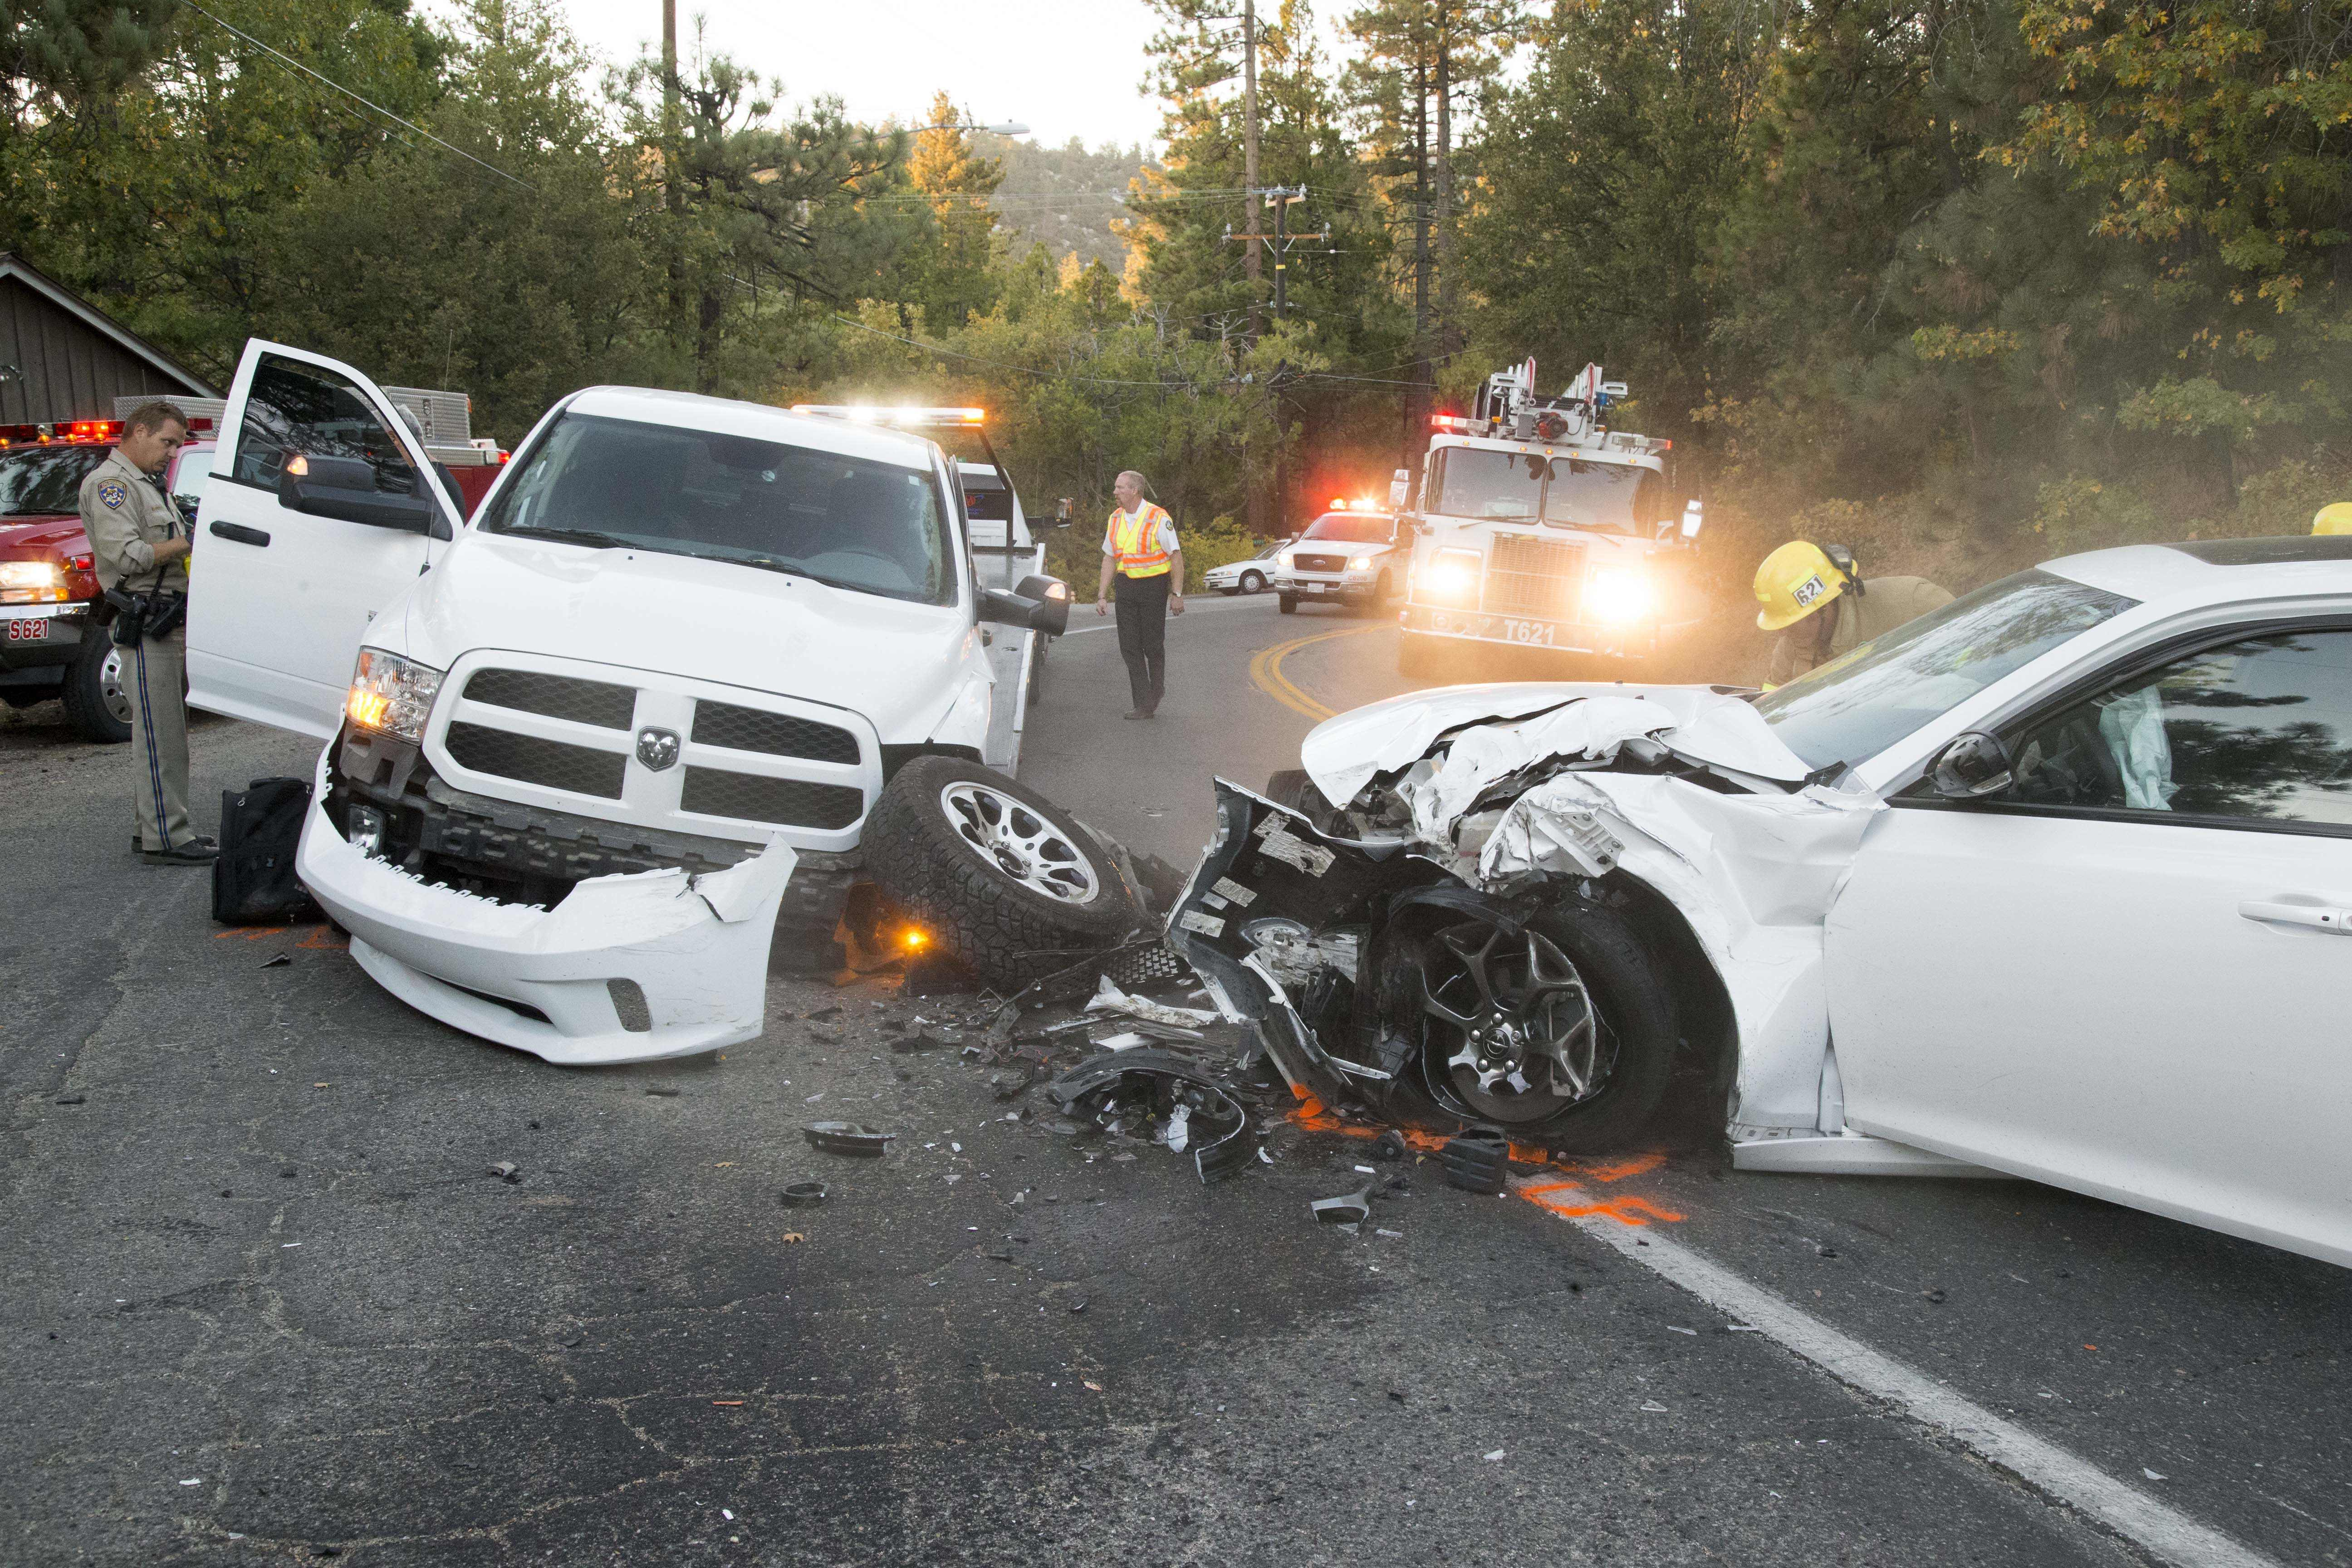 Lincoln Town Car 2017 >> Three car collision in Idyllwild Saturday evening • Idyllwild Town Crier